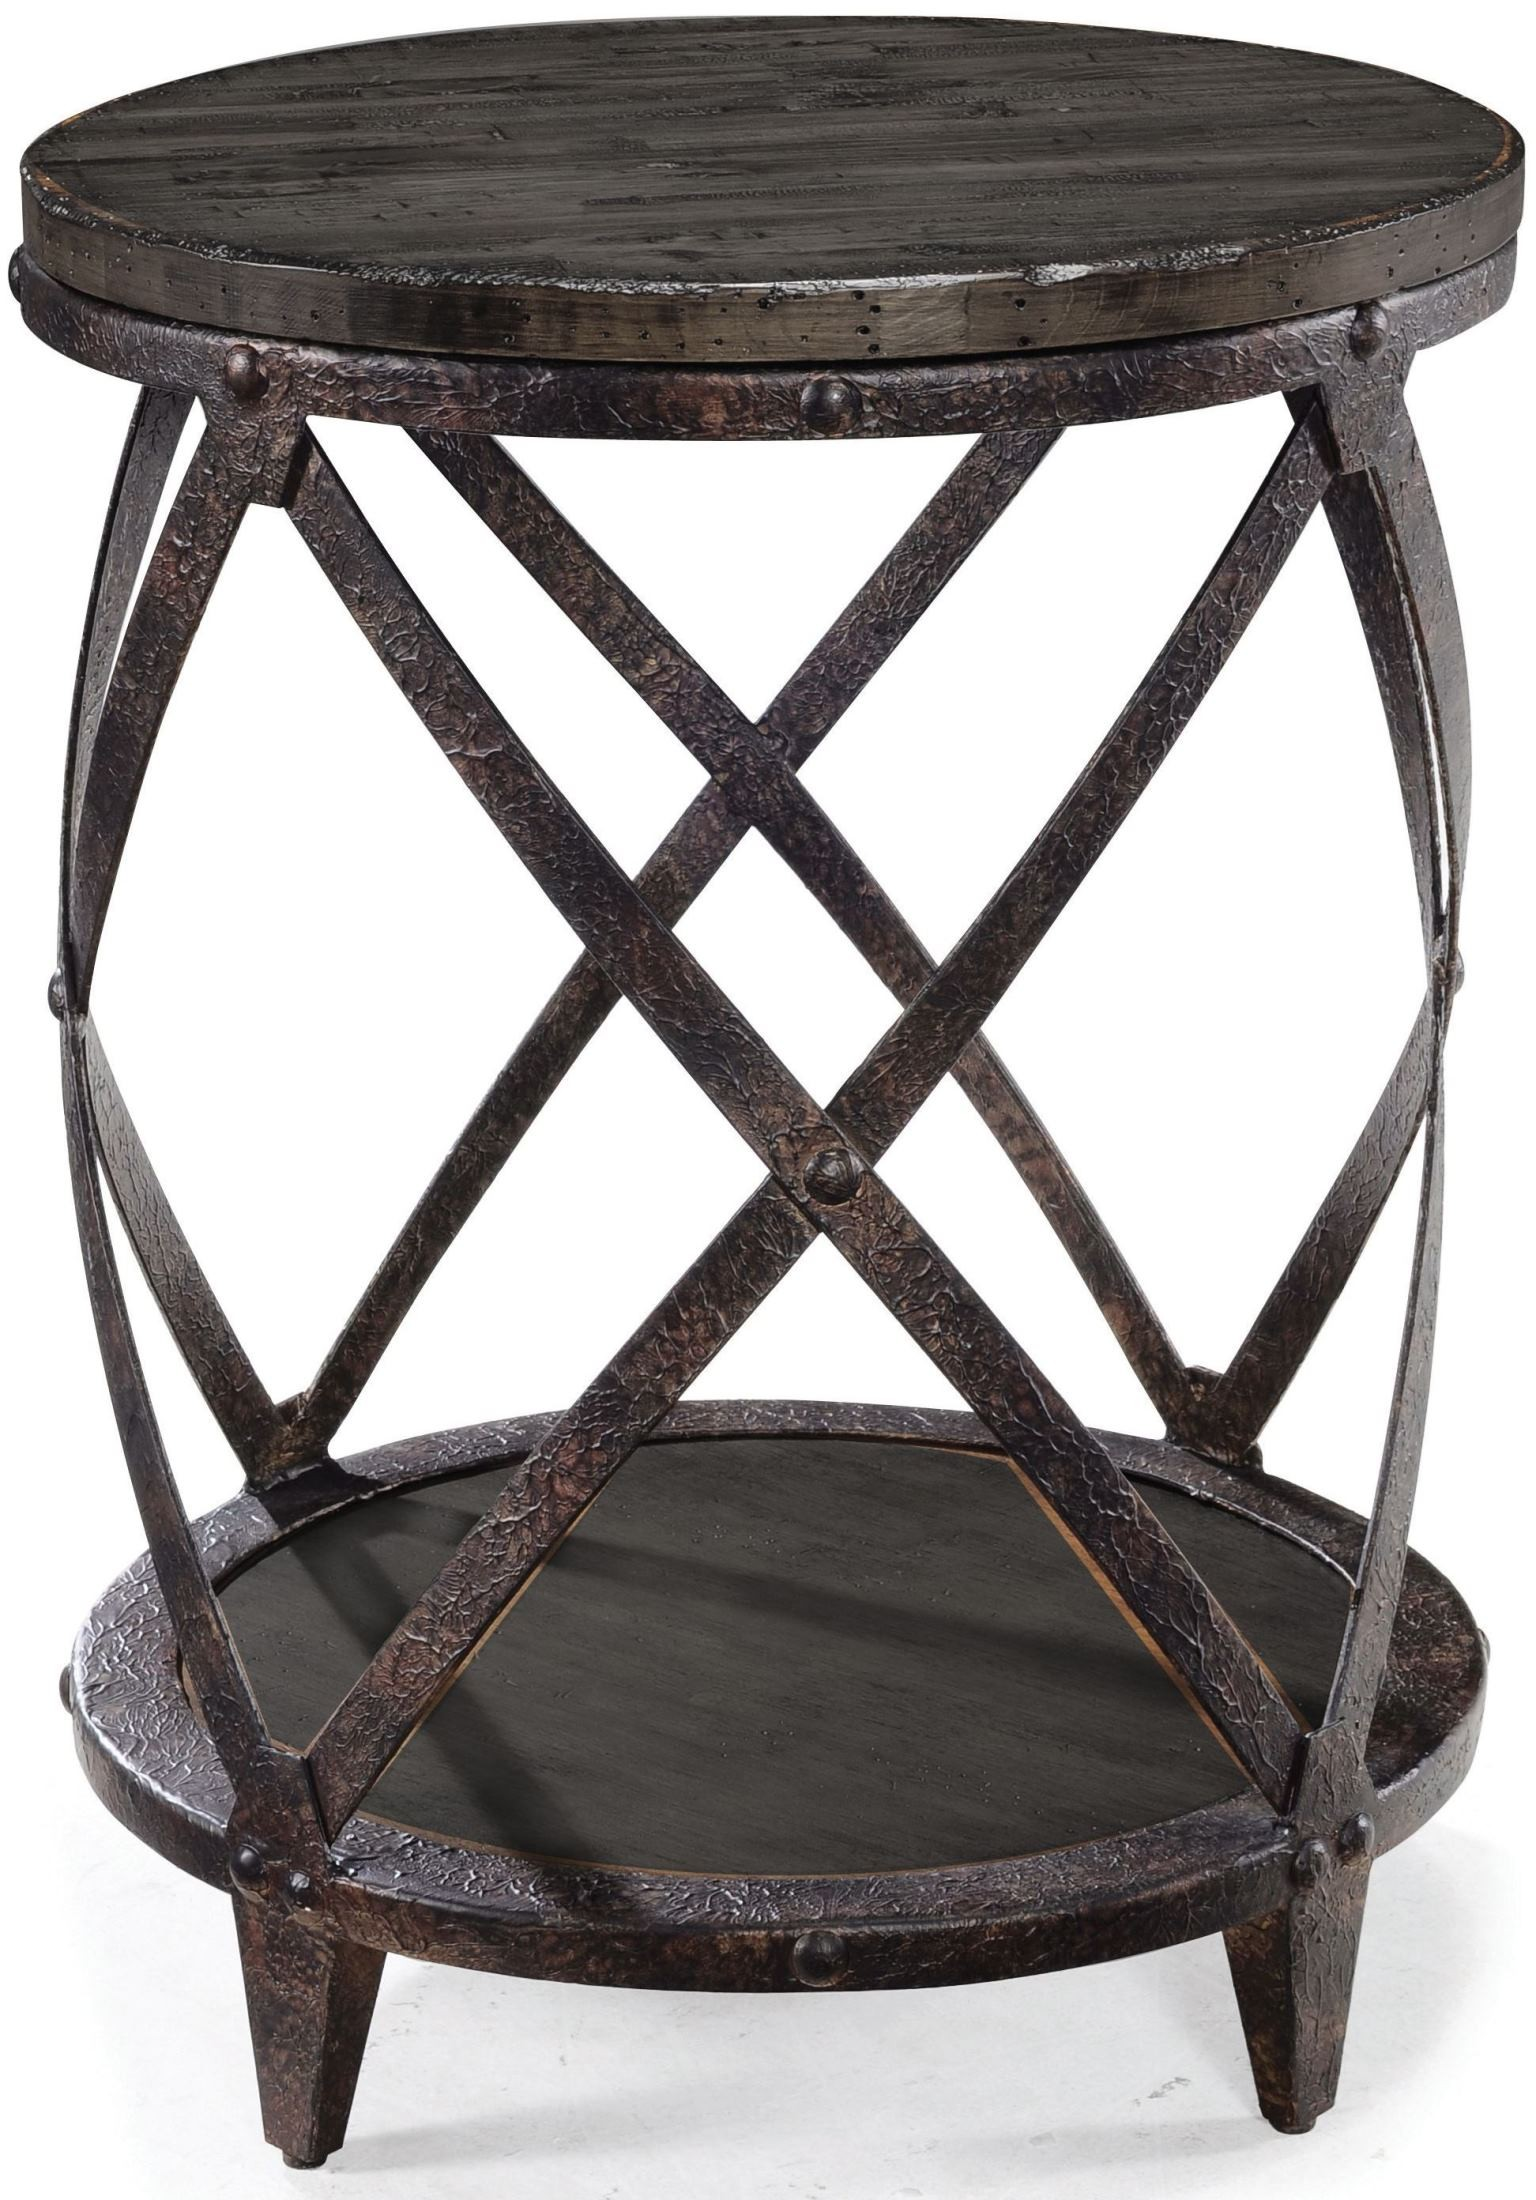 magnussen milford weathered charcoal and gunmetal round accent table gray champagne bucket parquet target carpet transition strip front door console ellipsis mat for dining west